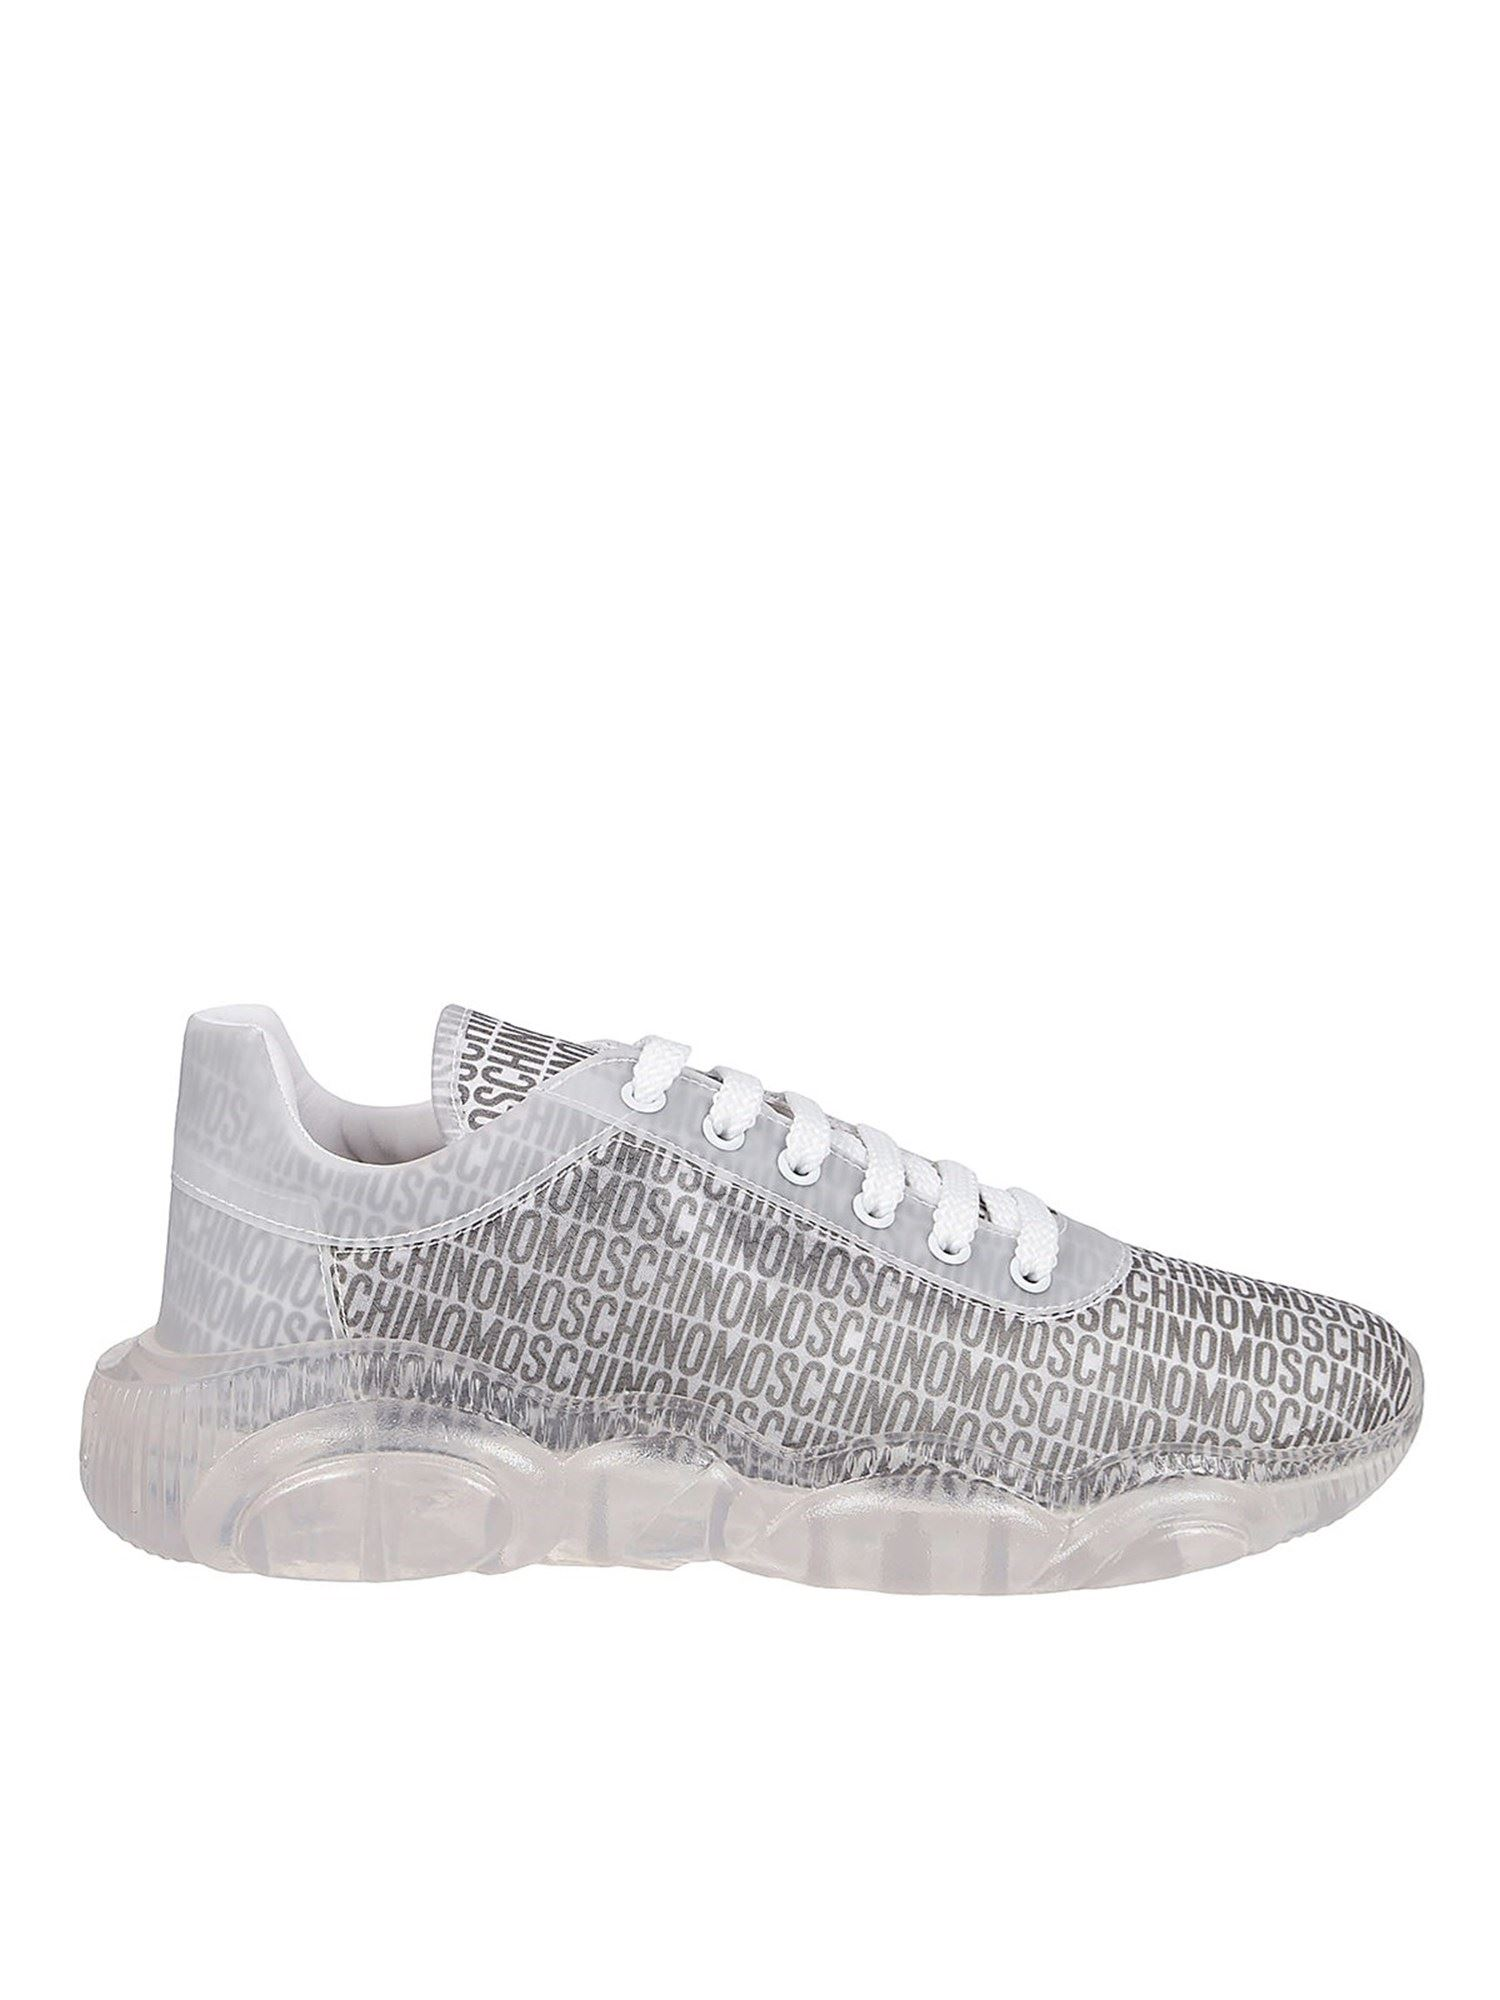 Moschino ORSO35 SNEAKERS IN GREY